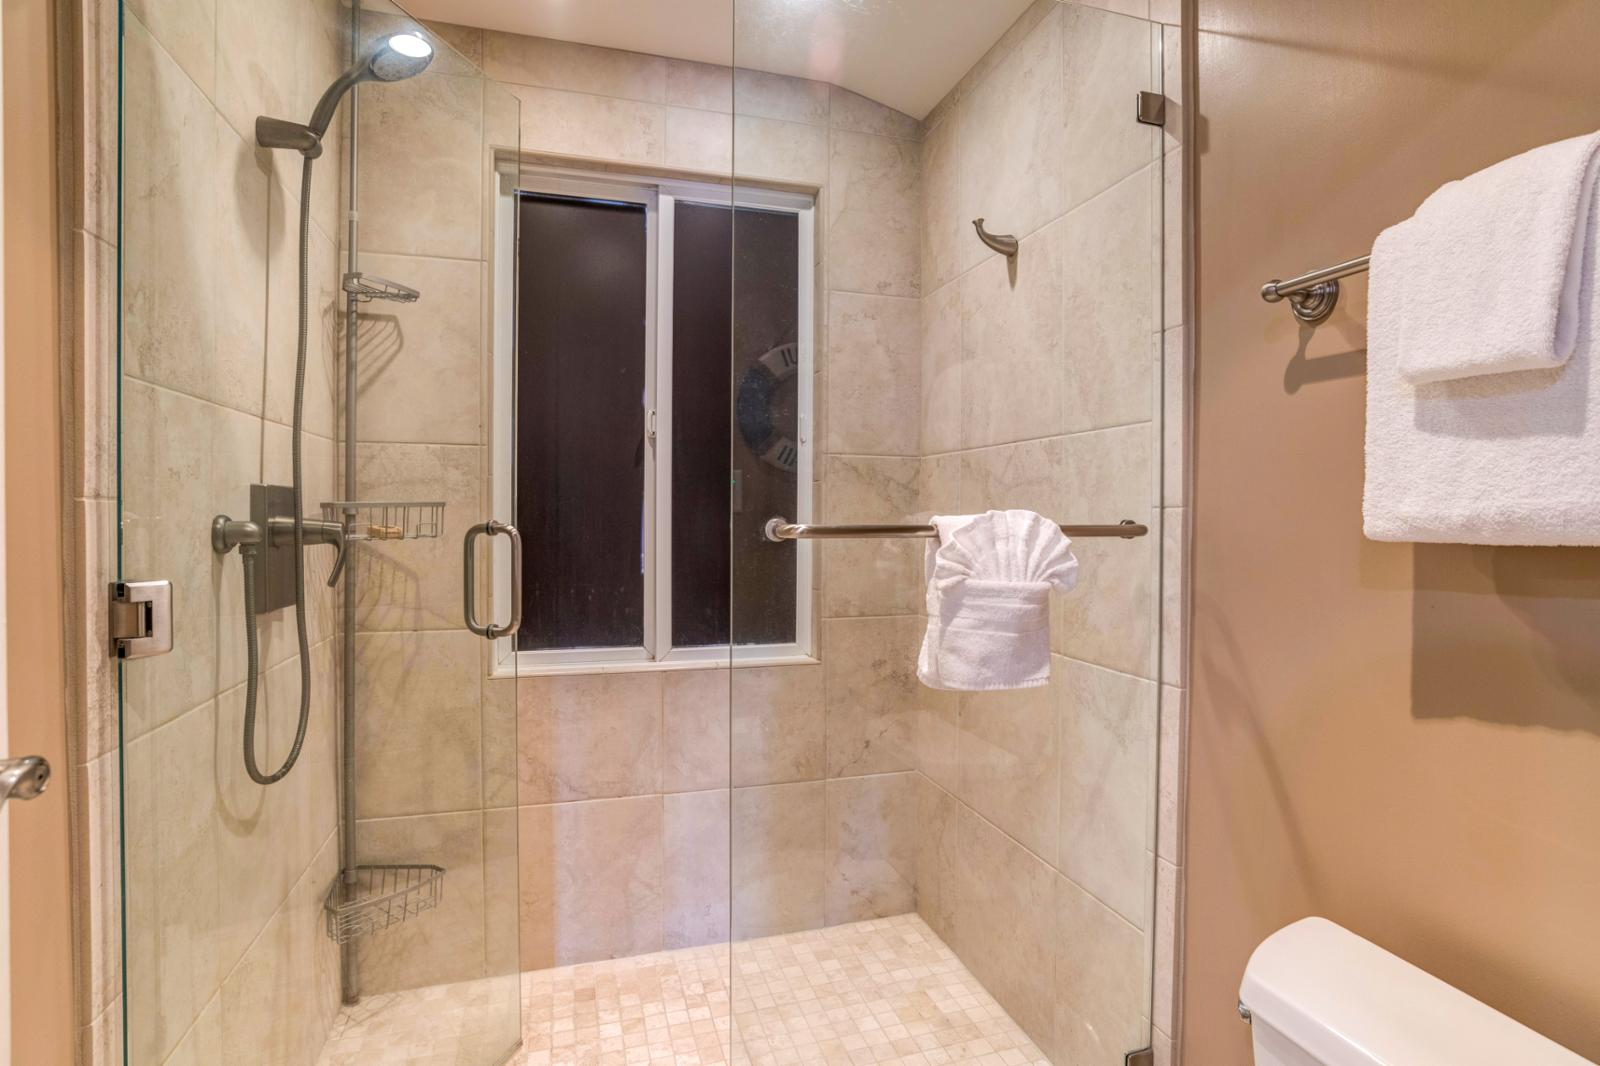 Floor to ceiling glass enclosed shower with upgraded interiors and lighting